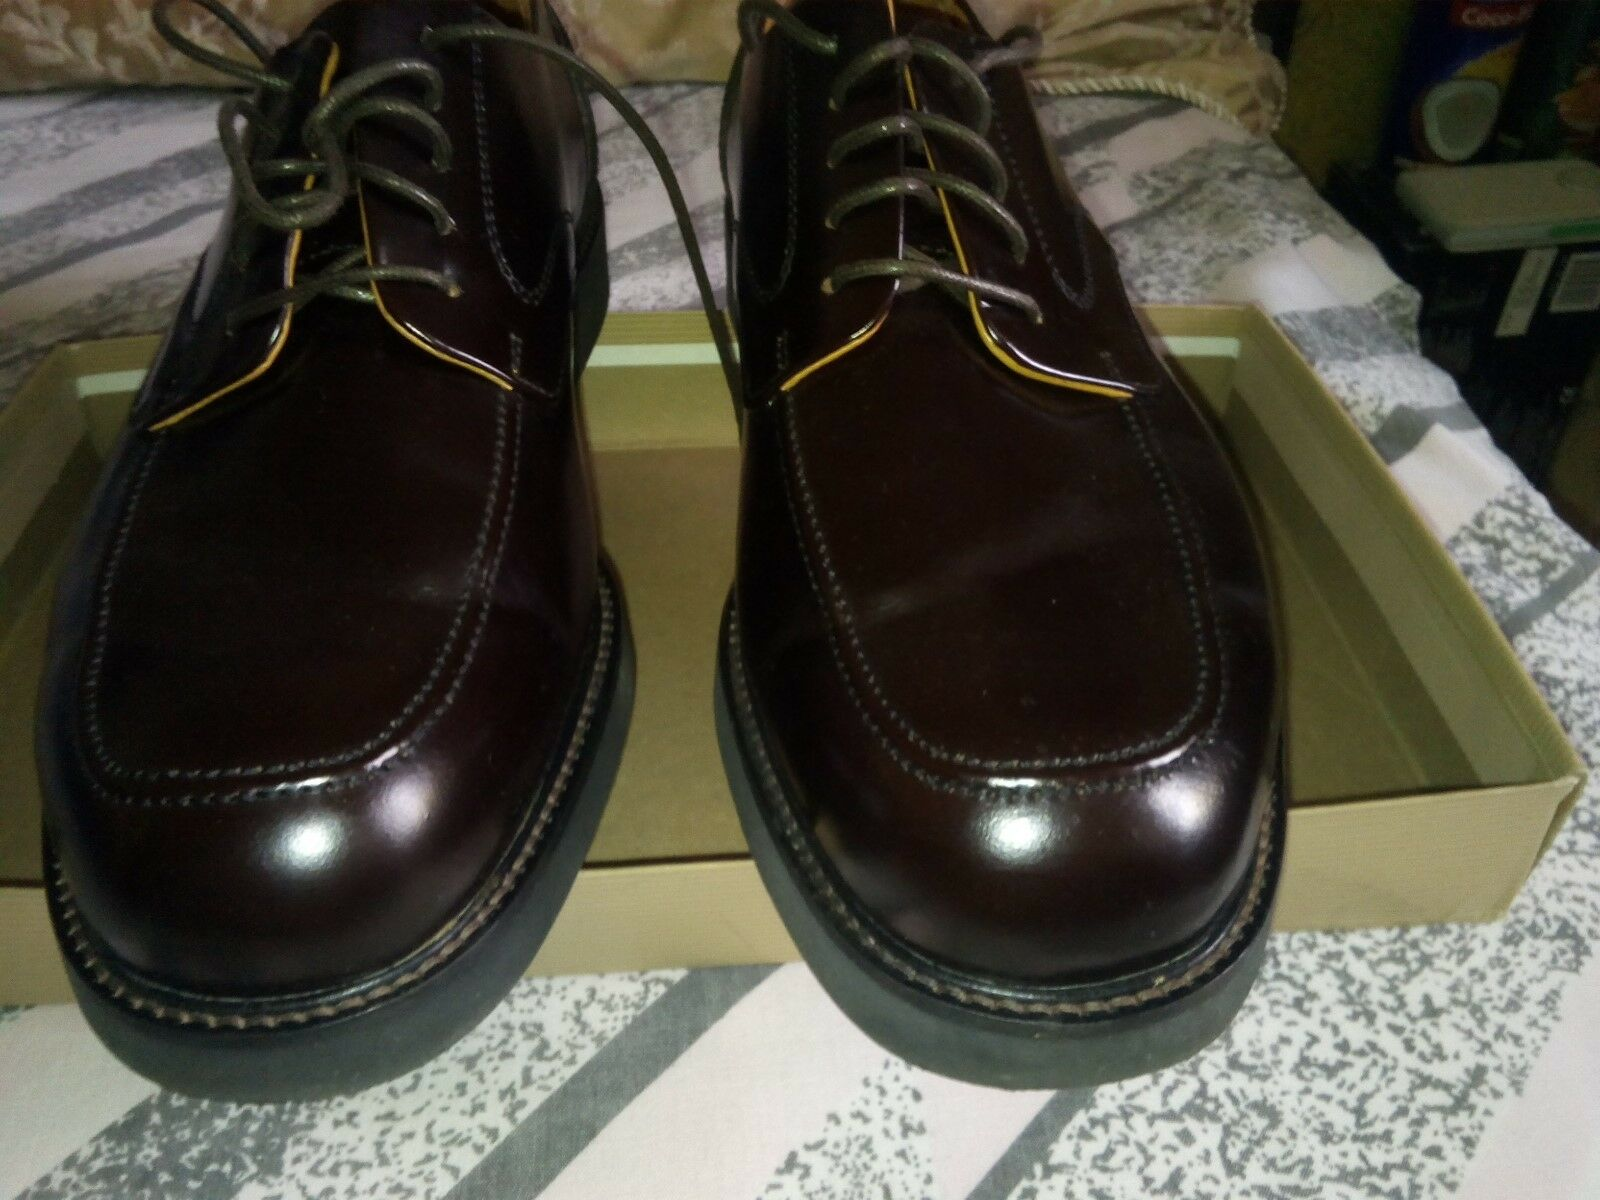 Men's Rockport shoes size 10 used